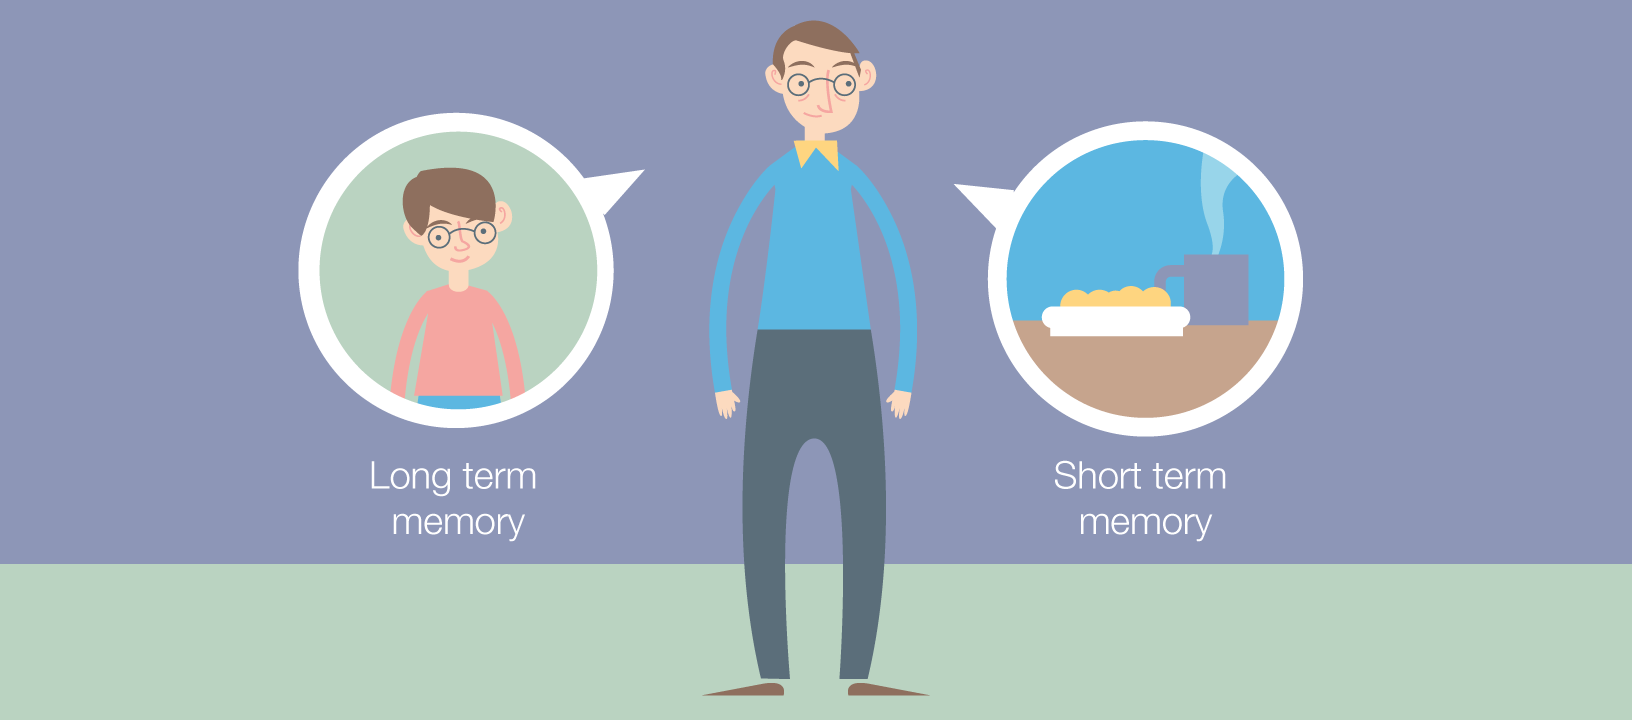 Short-term-vs-long-term-memory-loss copy